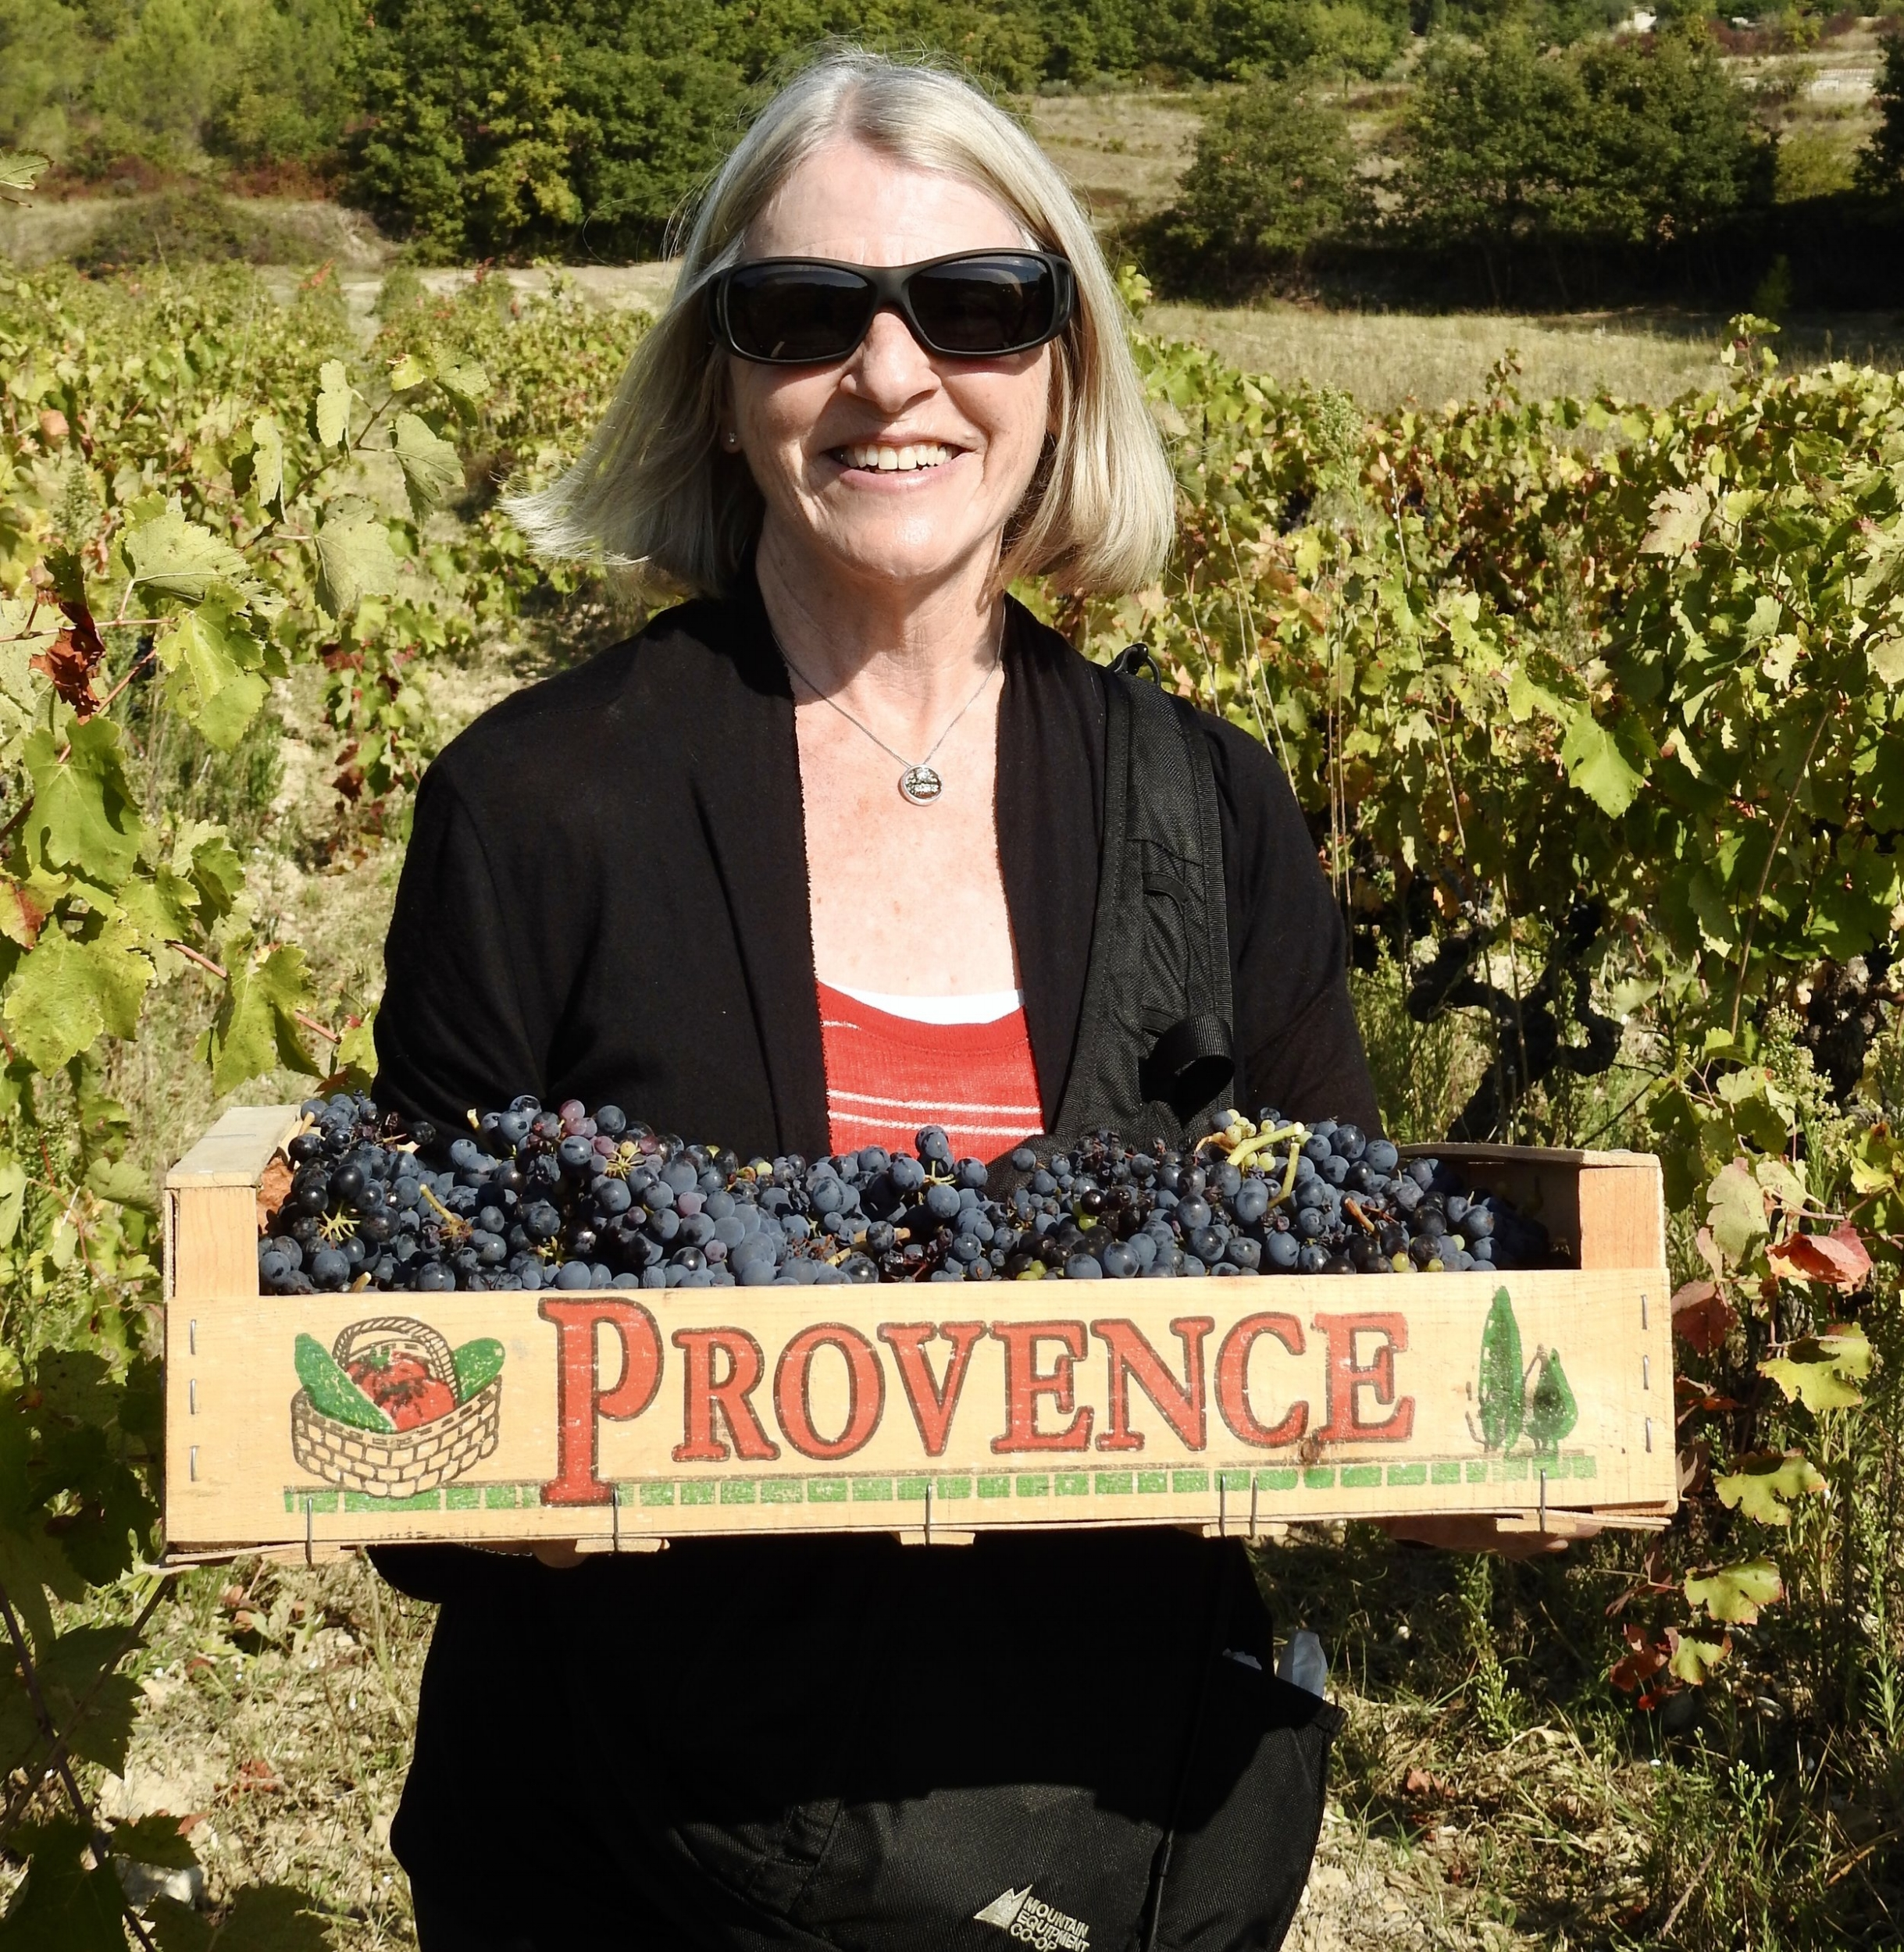 provence france tour review